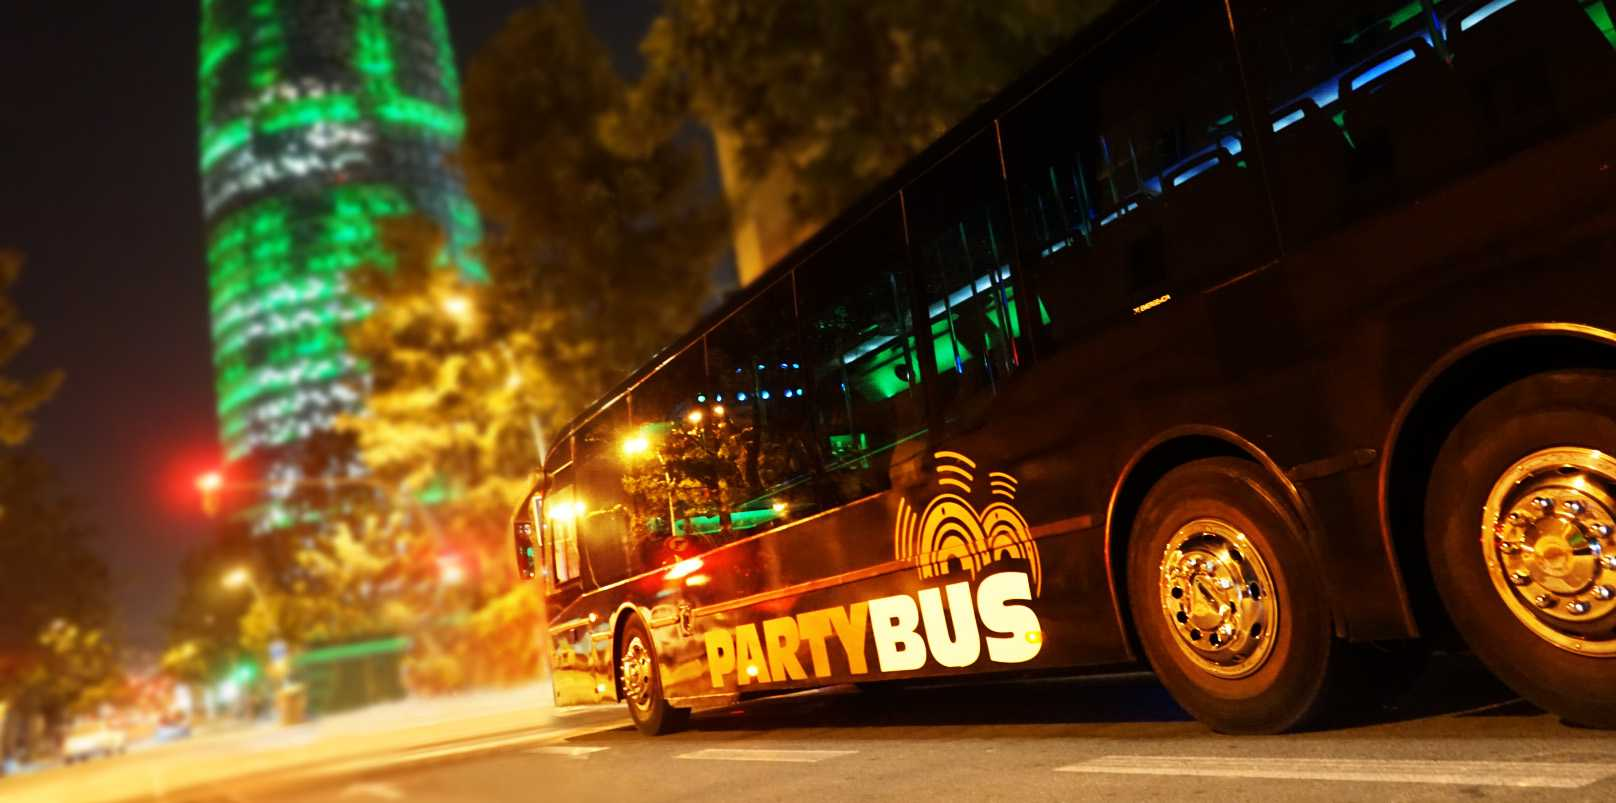 Party Bus Barcelona - La mayor fiesta Disco Bus de Barcelona